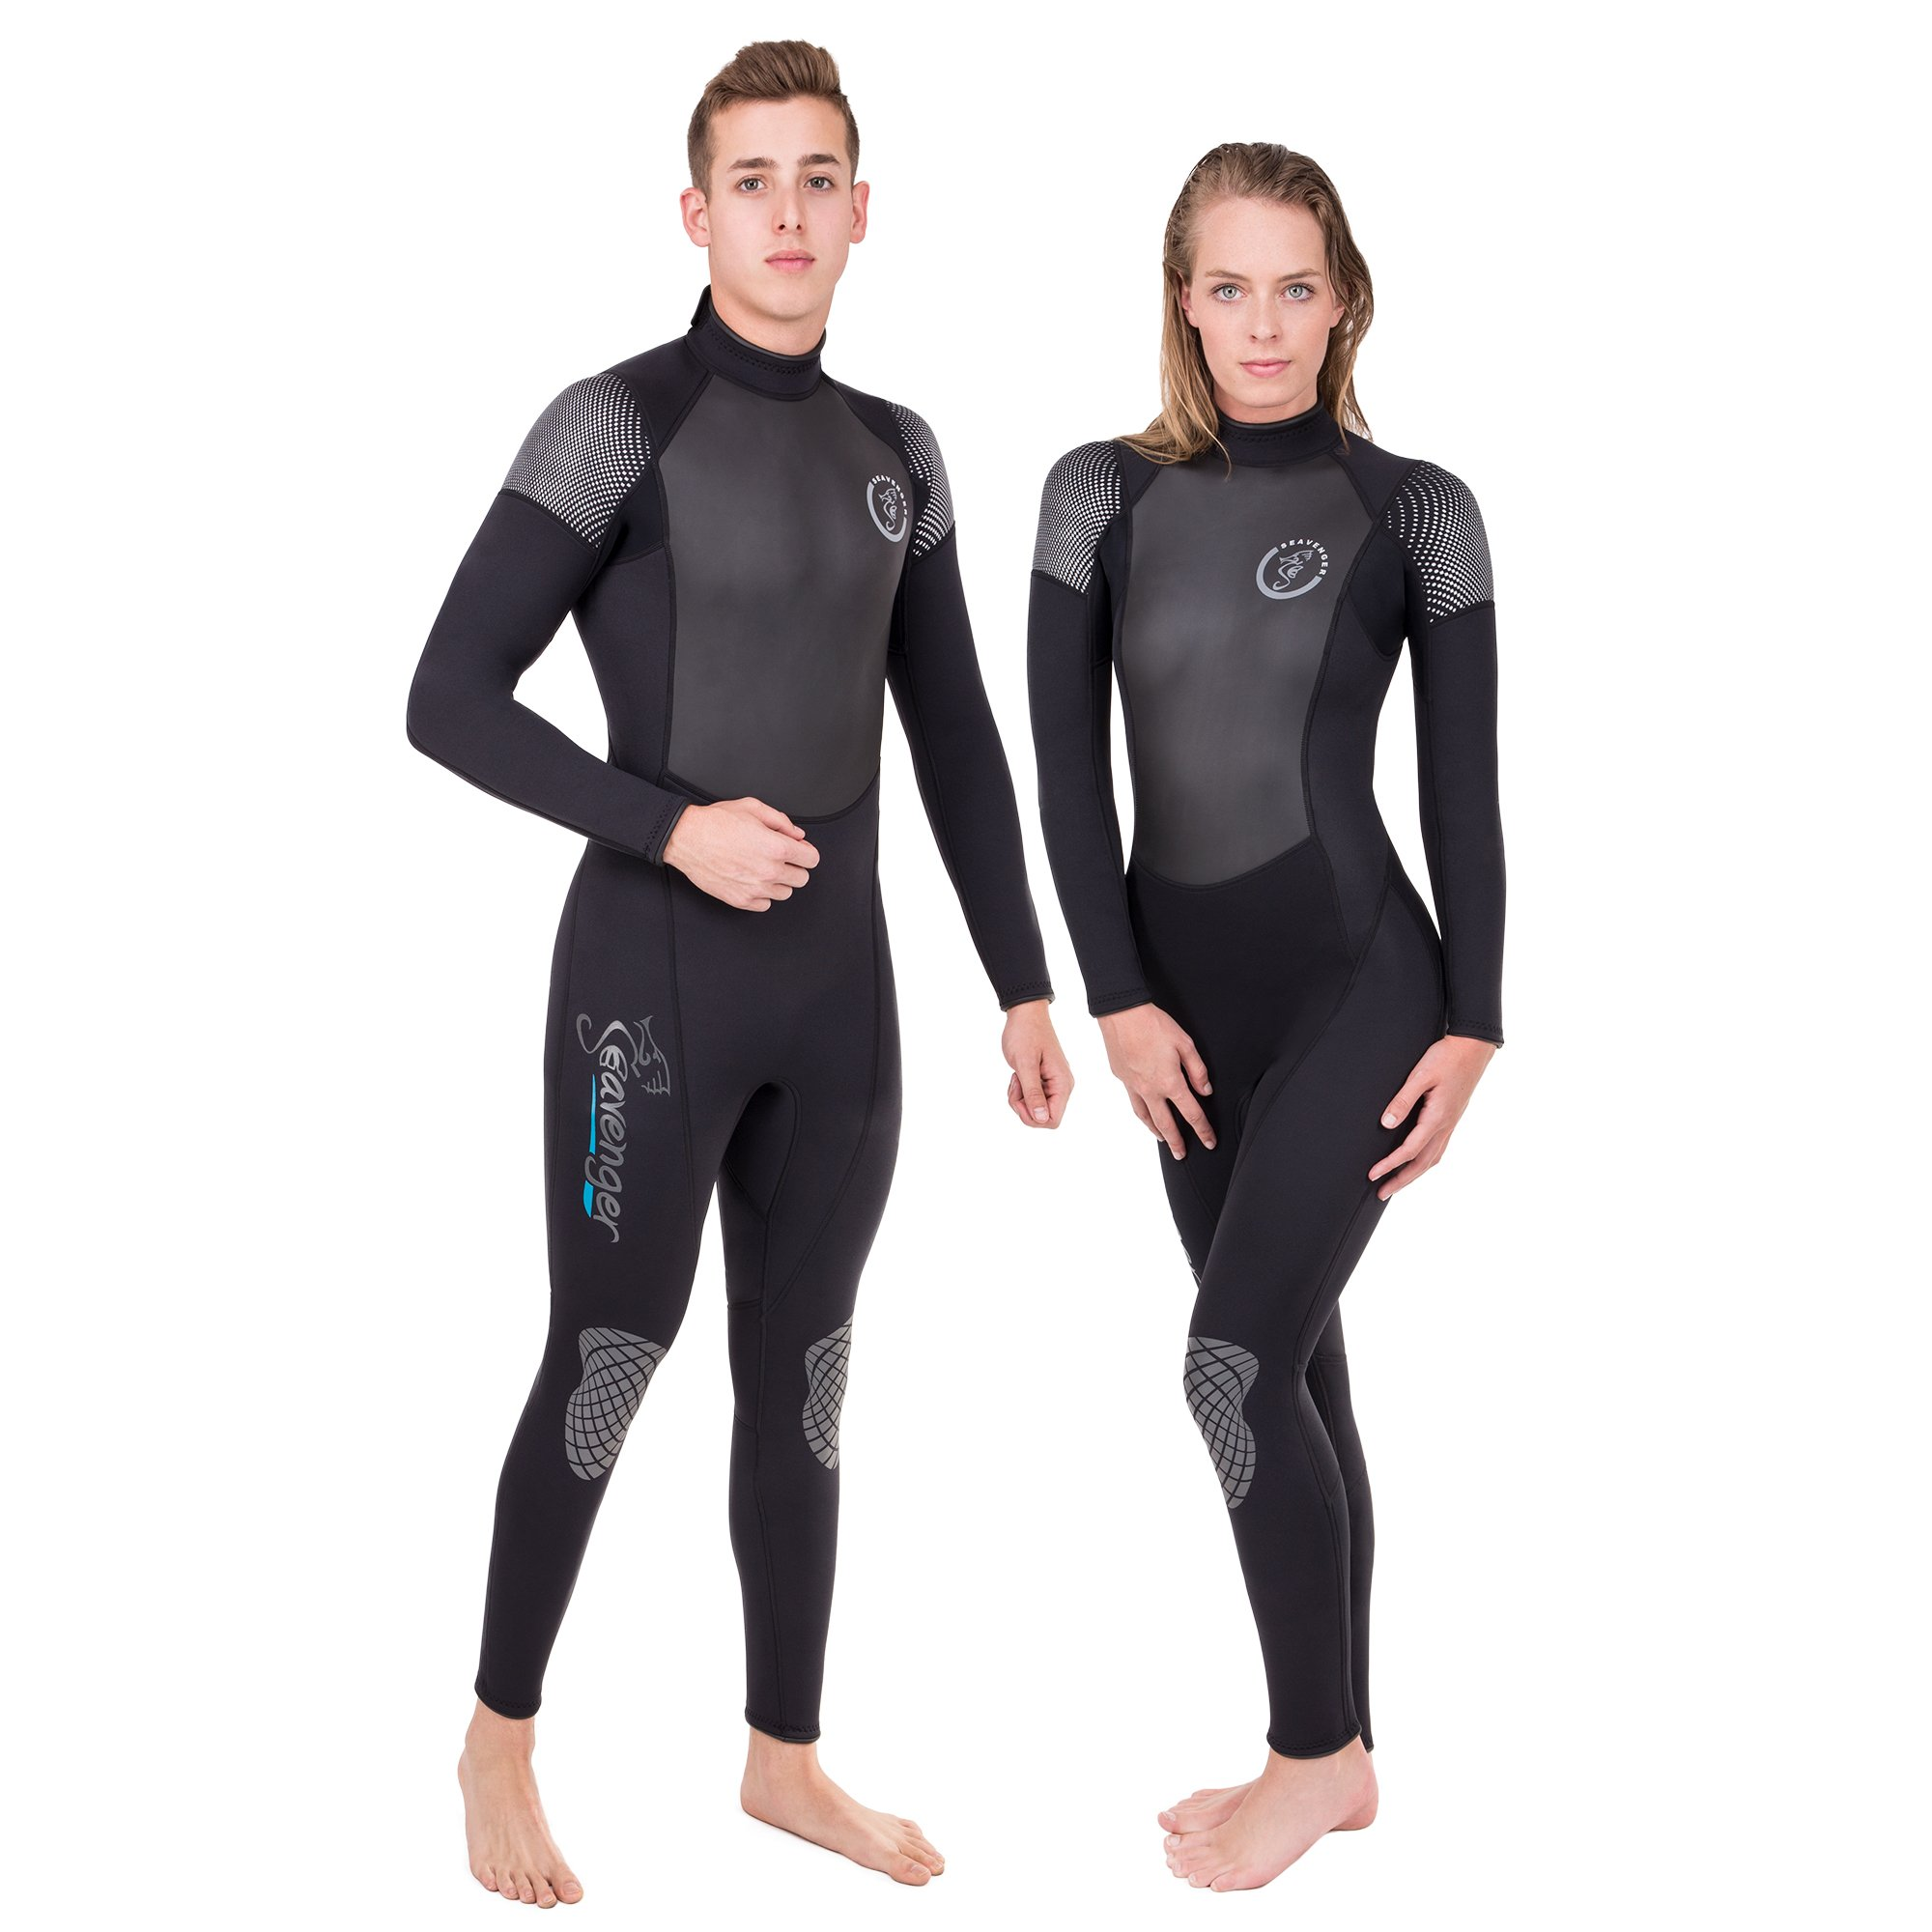 845e7362d8 Best Rated in Wetsuits & Helpful Customer Reviews - Amazon.com